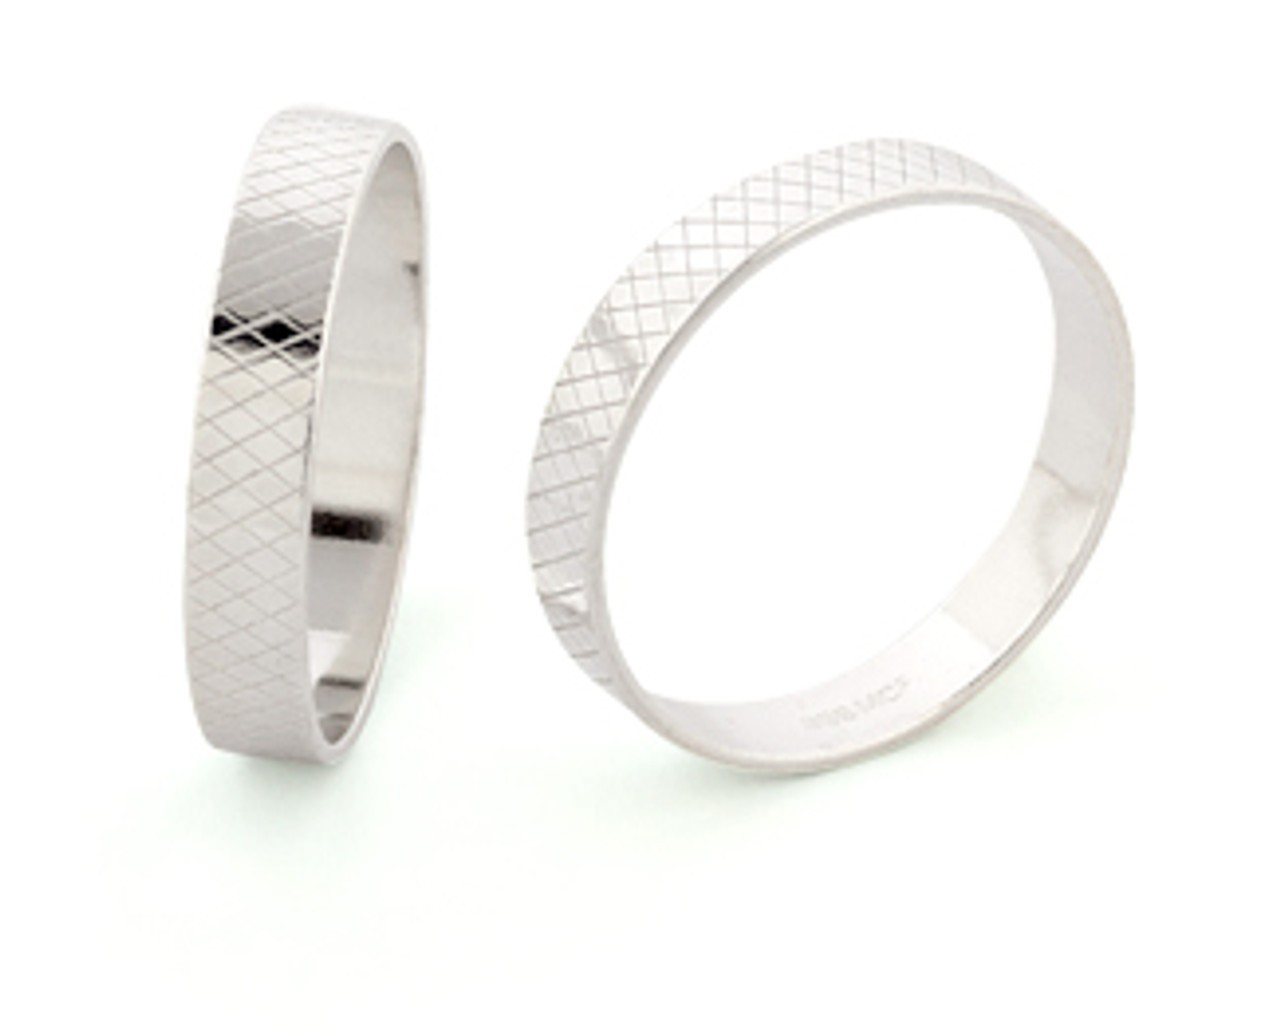 4mm Wide Ring Liner - Size 13